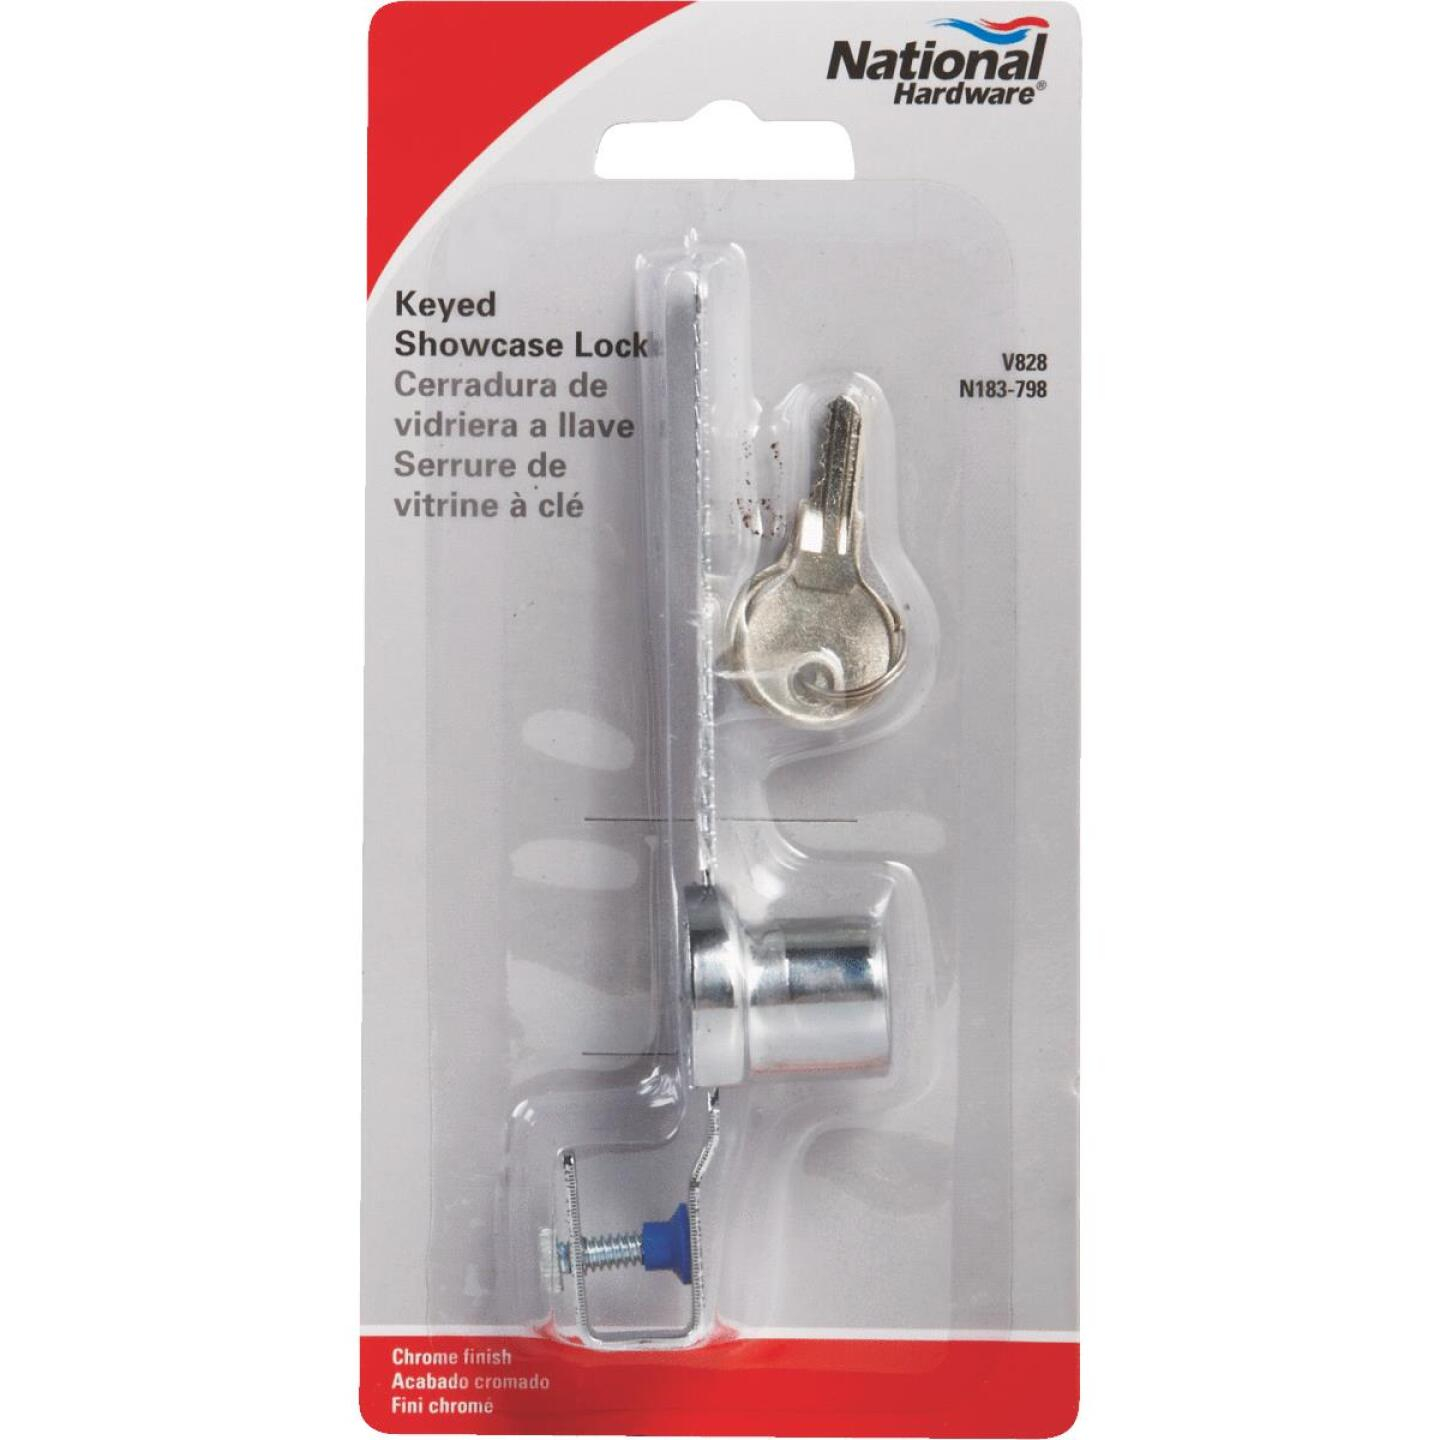 National 4-1/2 In. Chrome Keyed Showcase Lock - Keyed Different Image 2